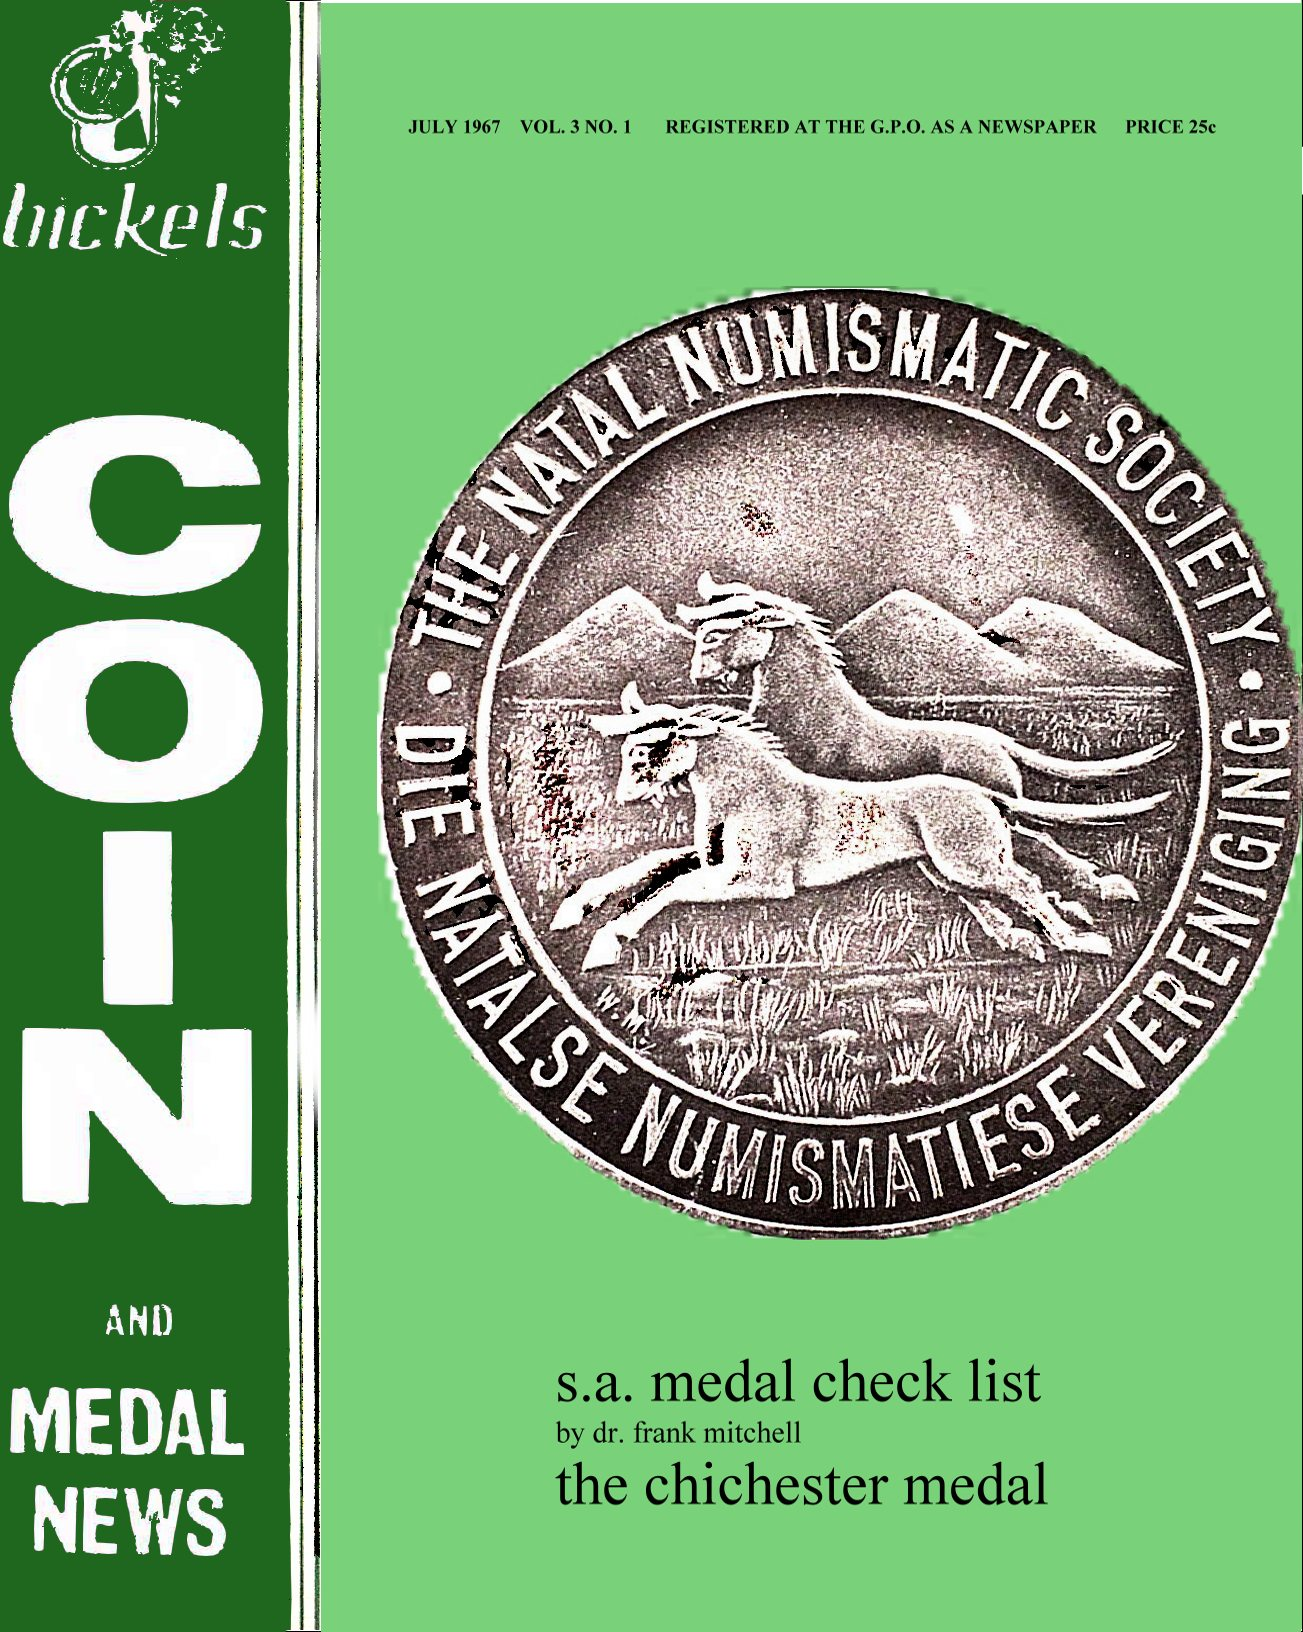 Bickels Coin & Medal News July 1967 Vol 3 No 1